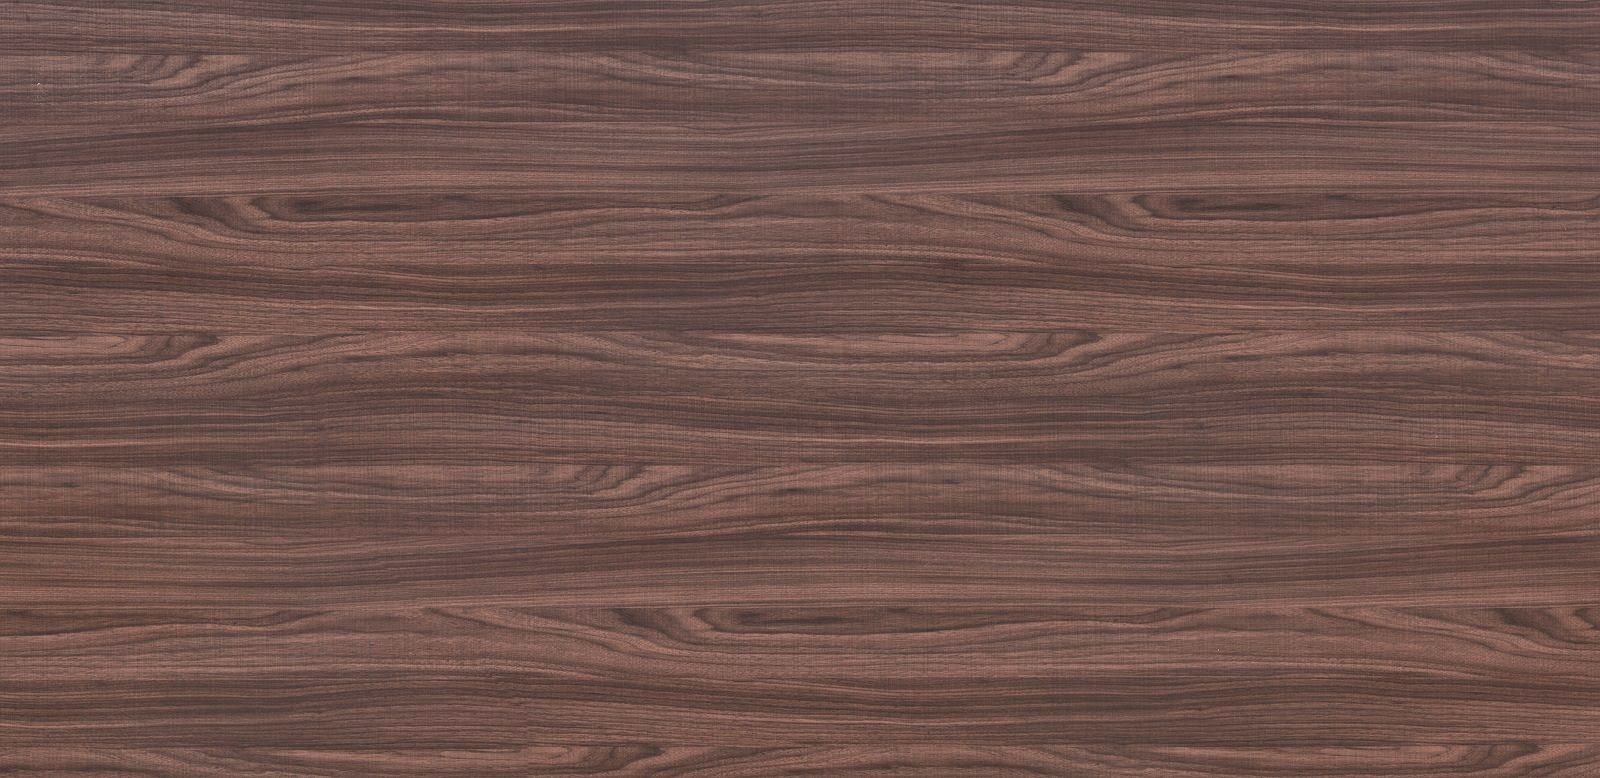 wood texture mapping